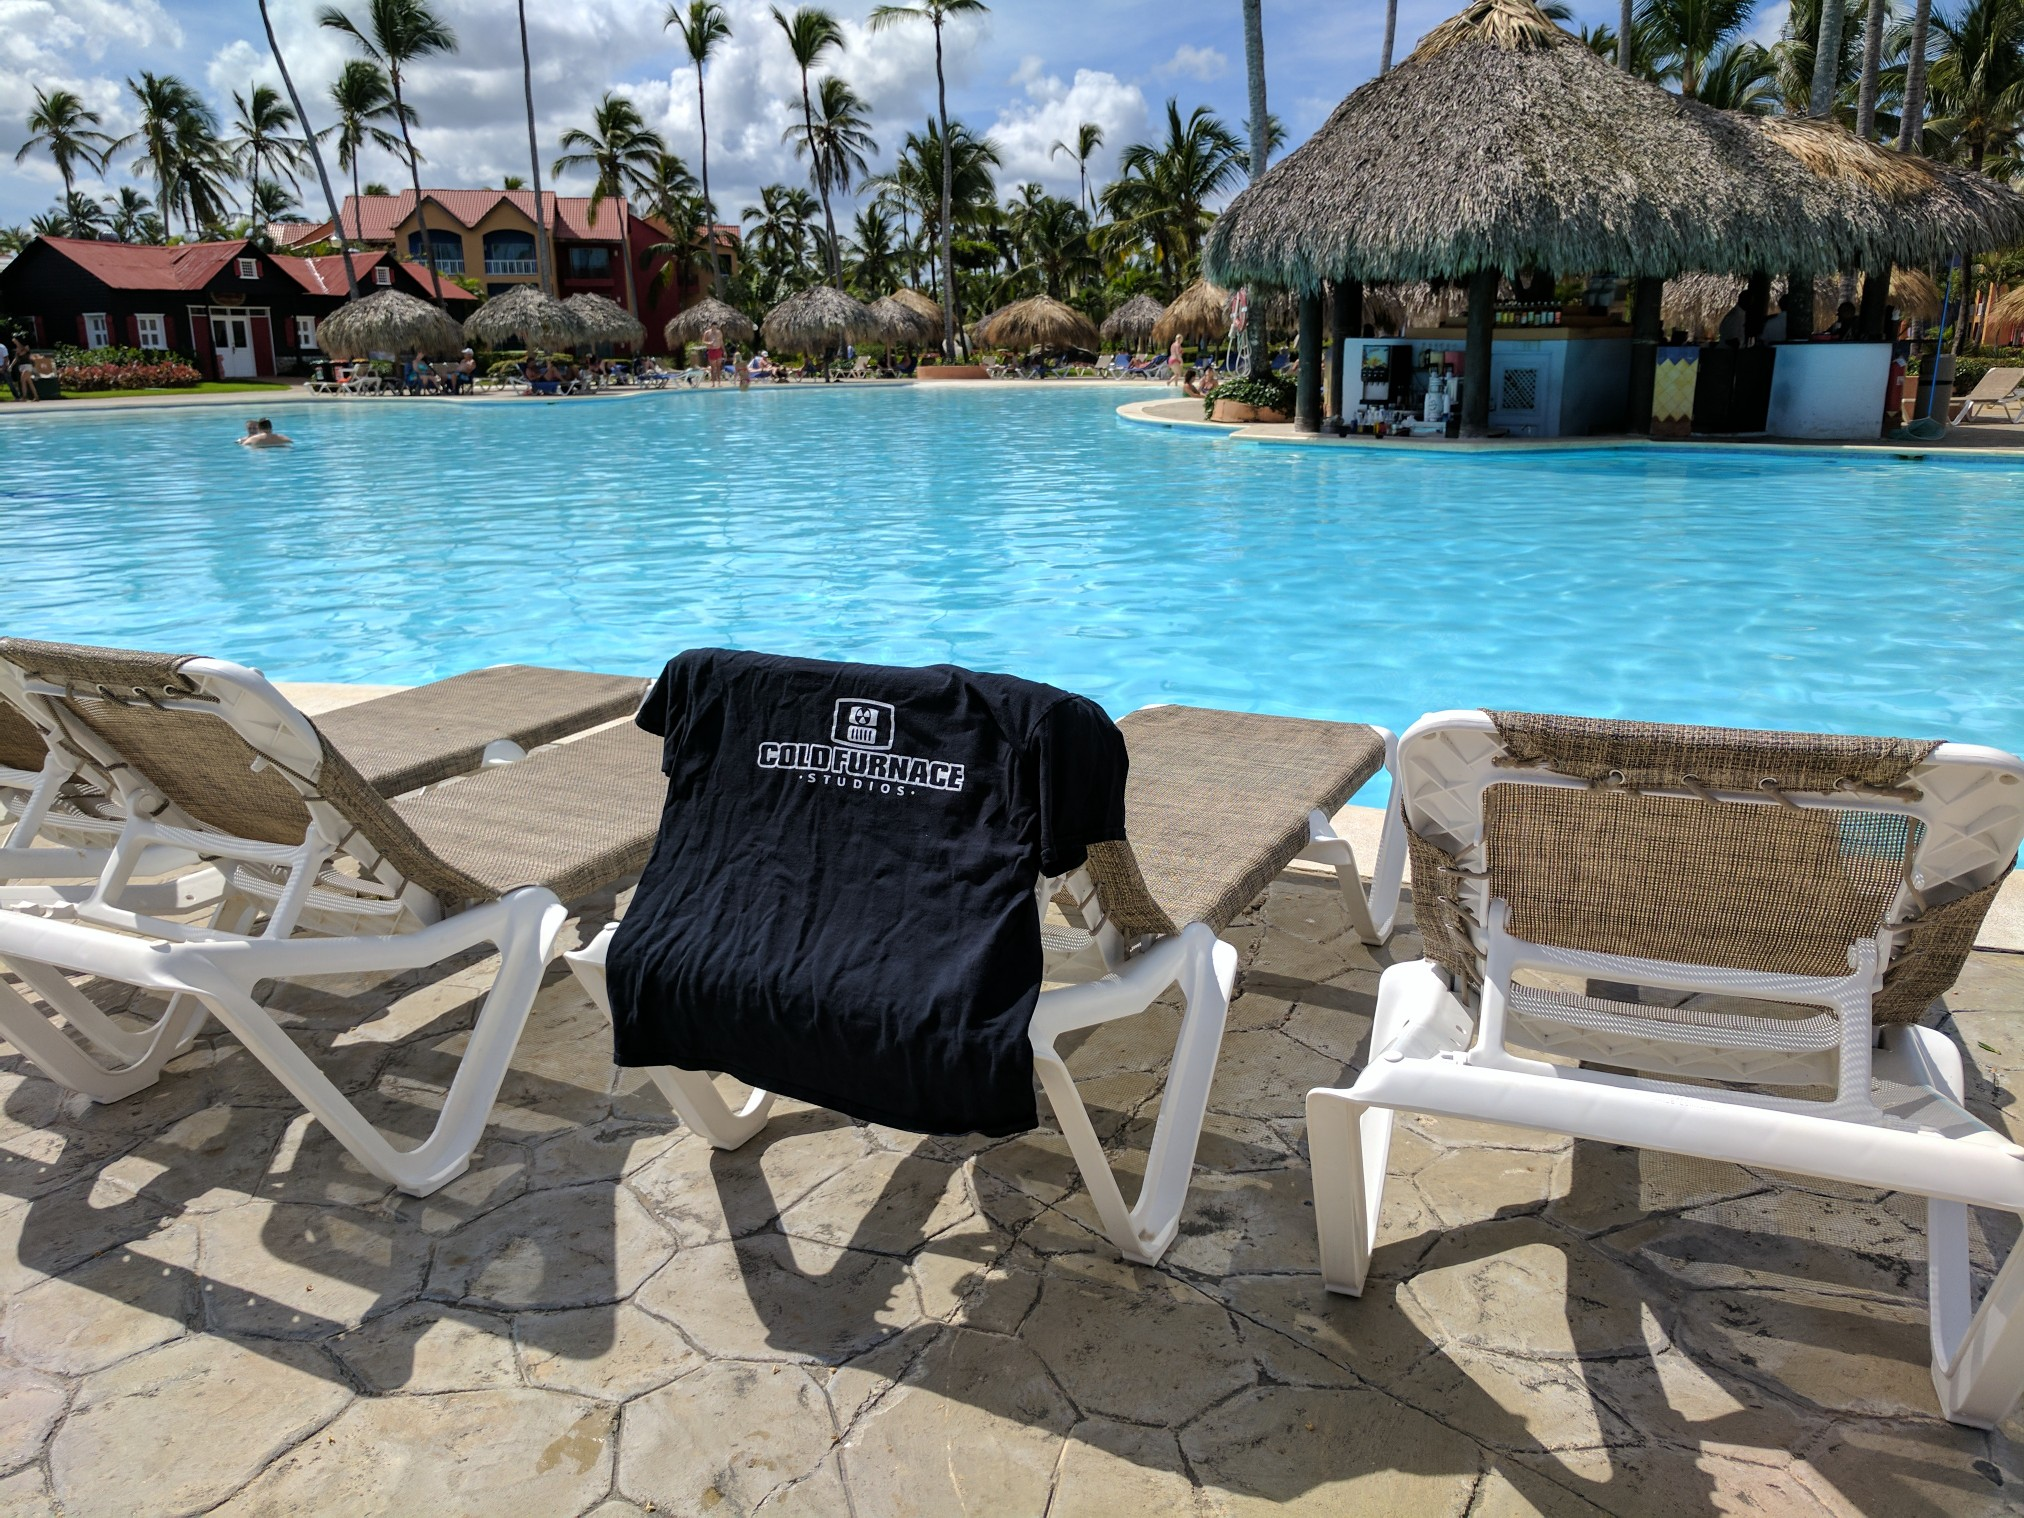 Cold Furnace tee spotted in the Dominican Republic!